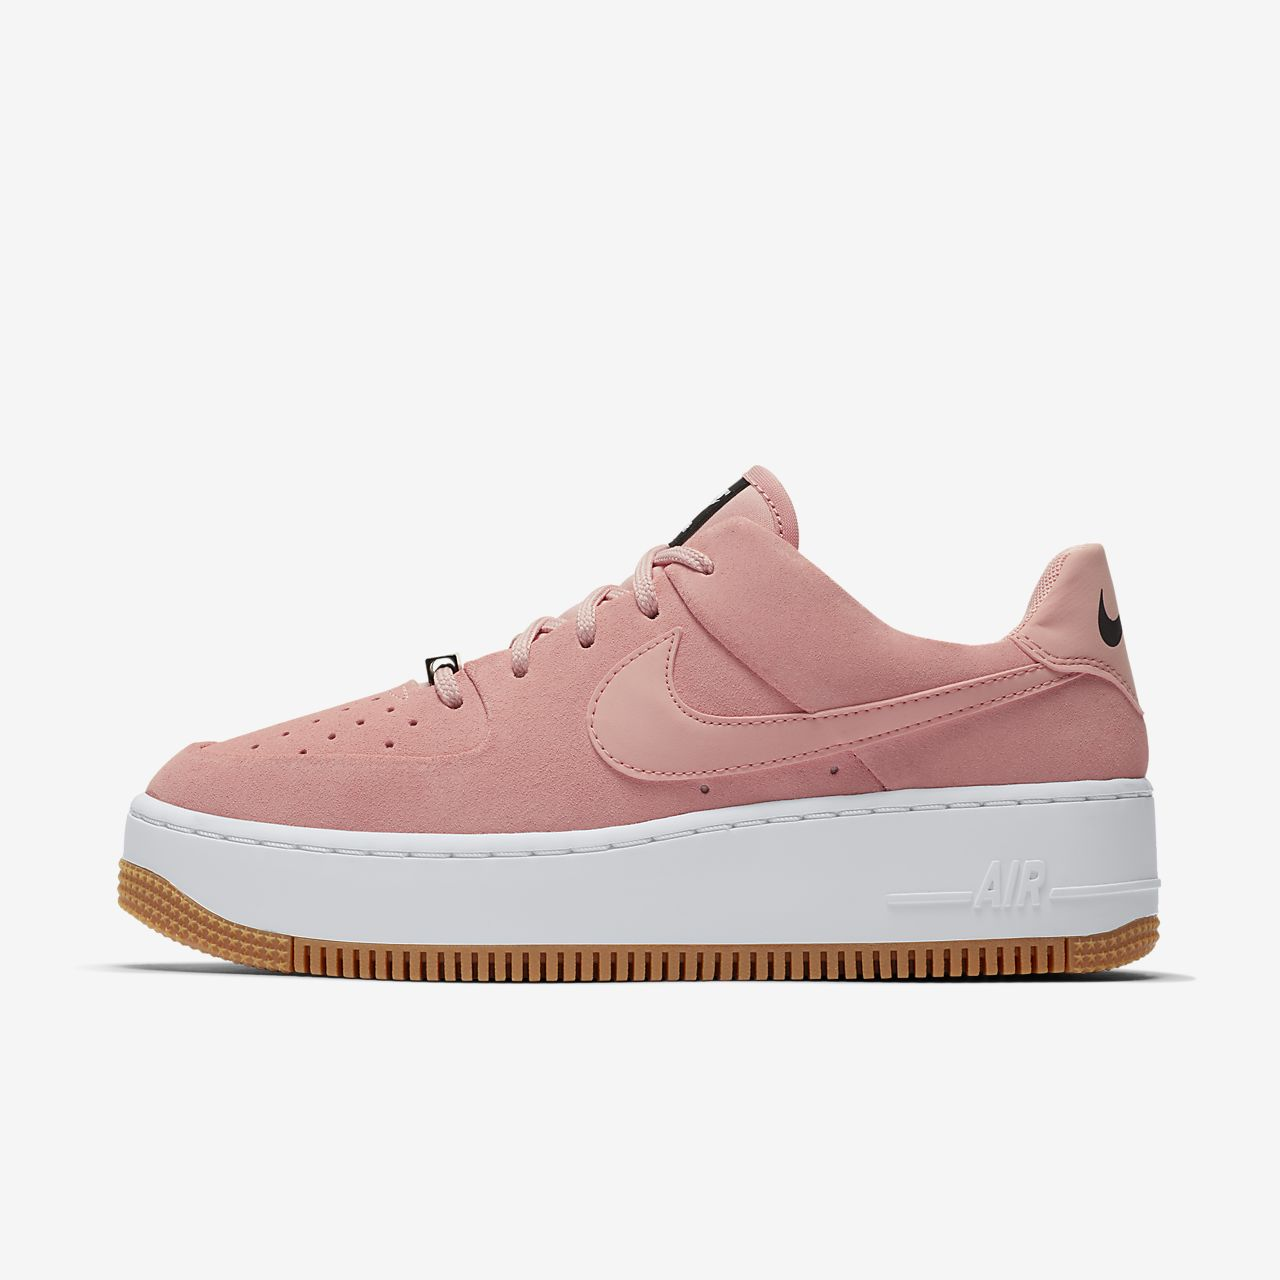 Nike Air Force 1 Sage Low Women's Shoe